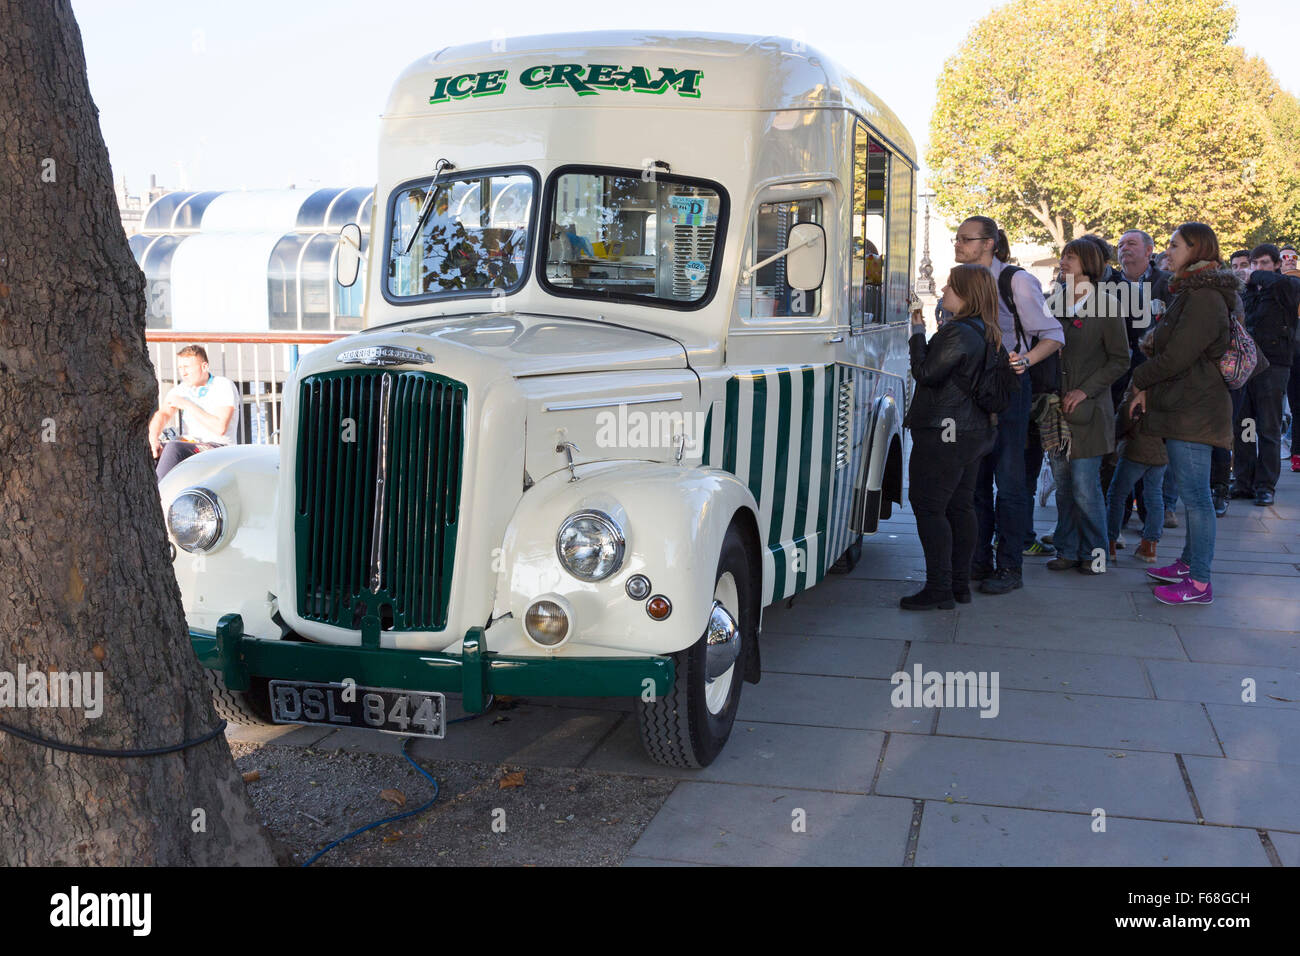 People queueing for ice cream from a 1950s Morris Commercial van, South Bank, London Stock Photo